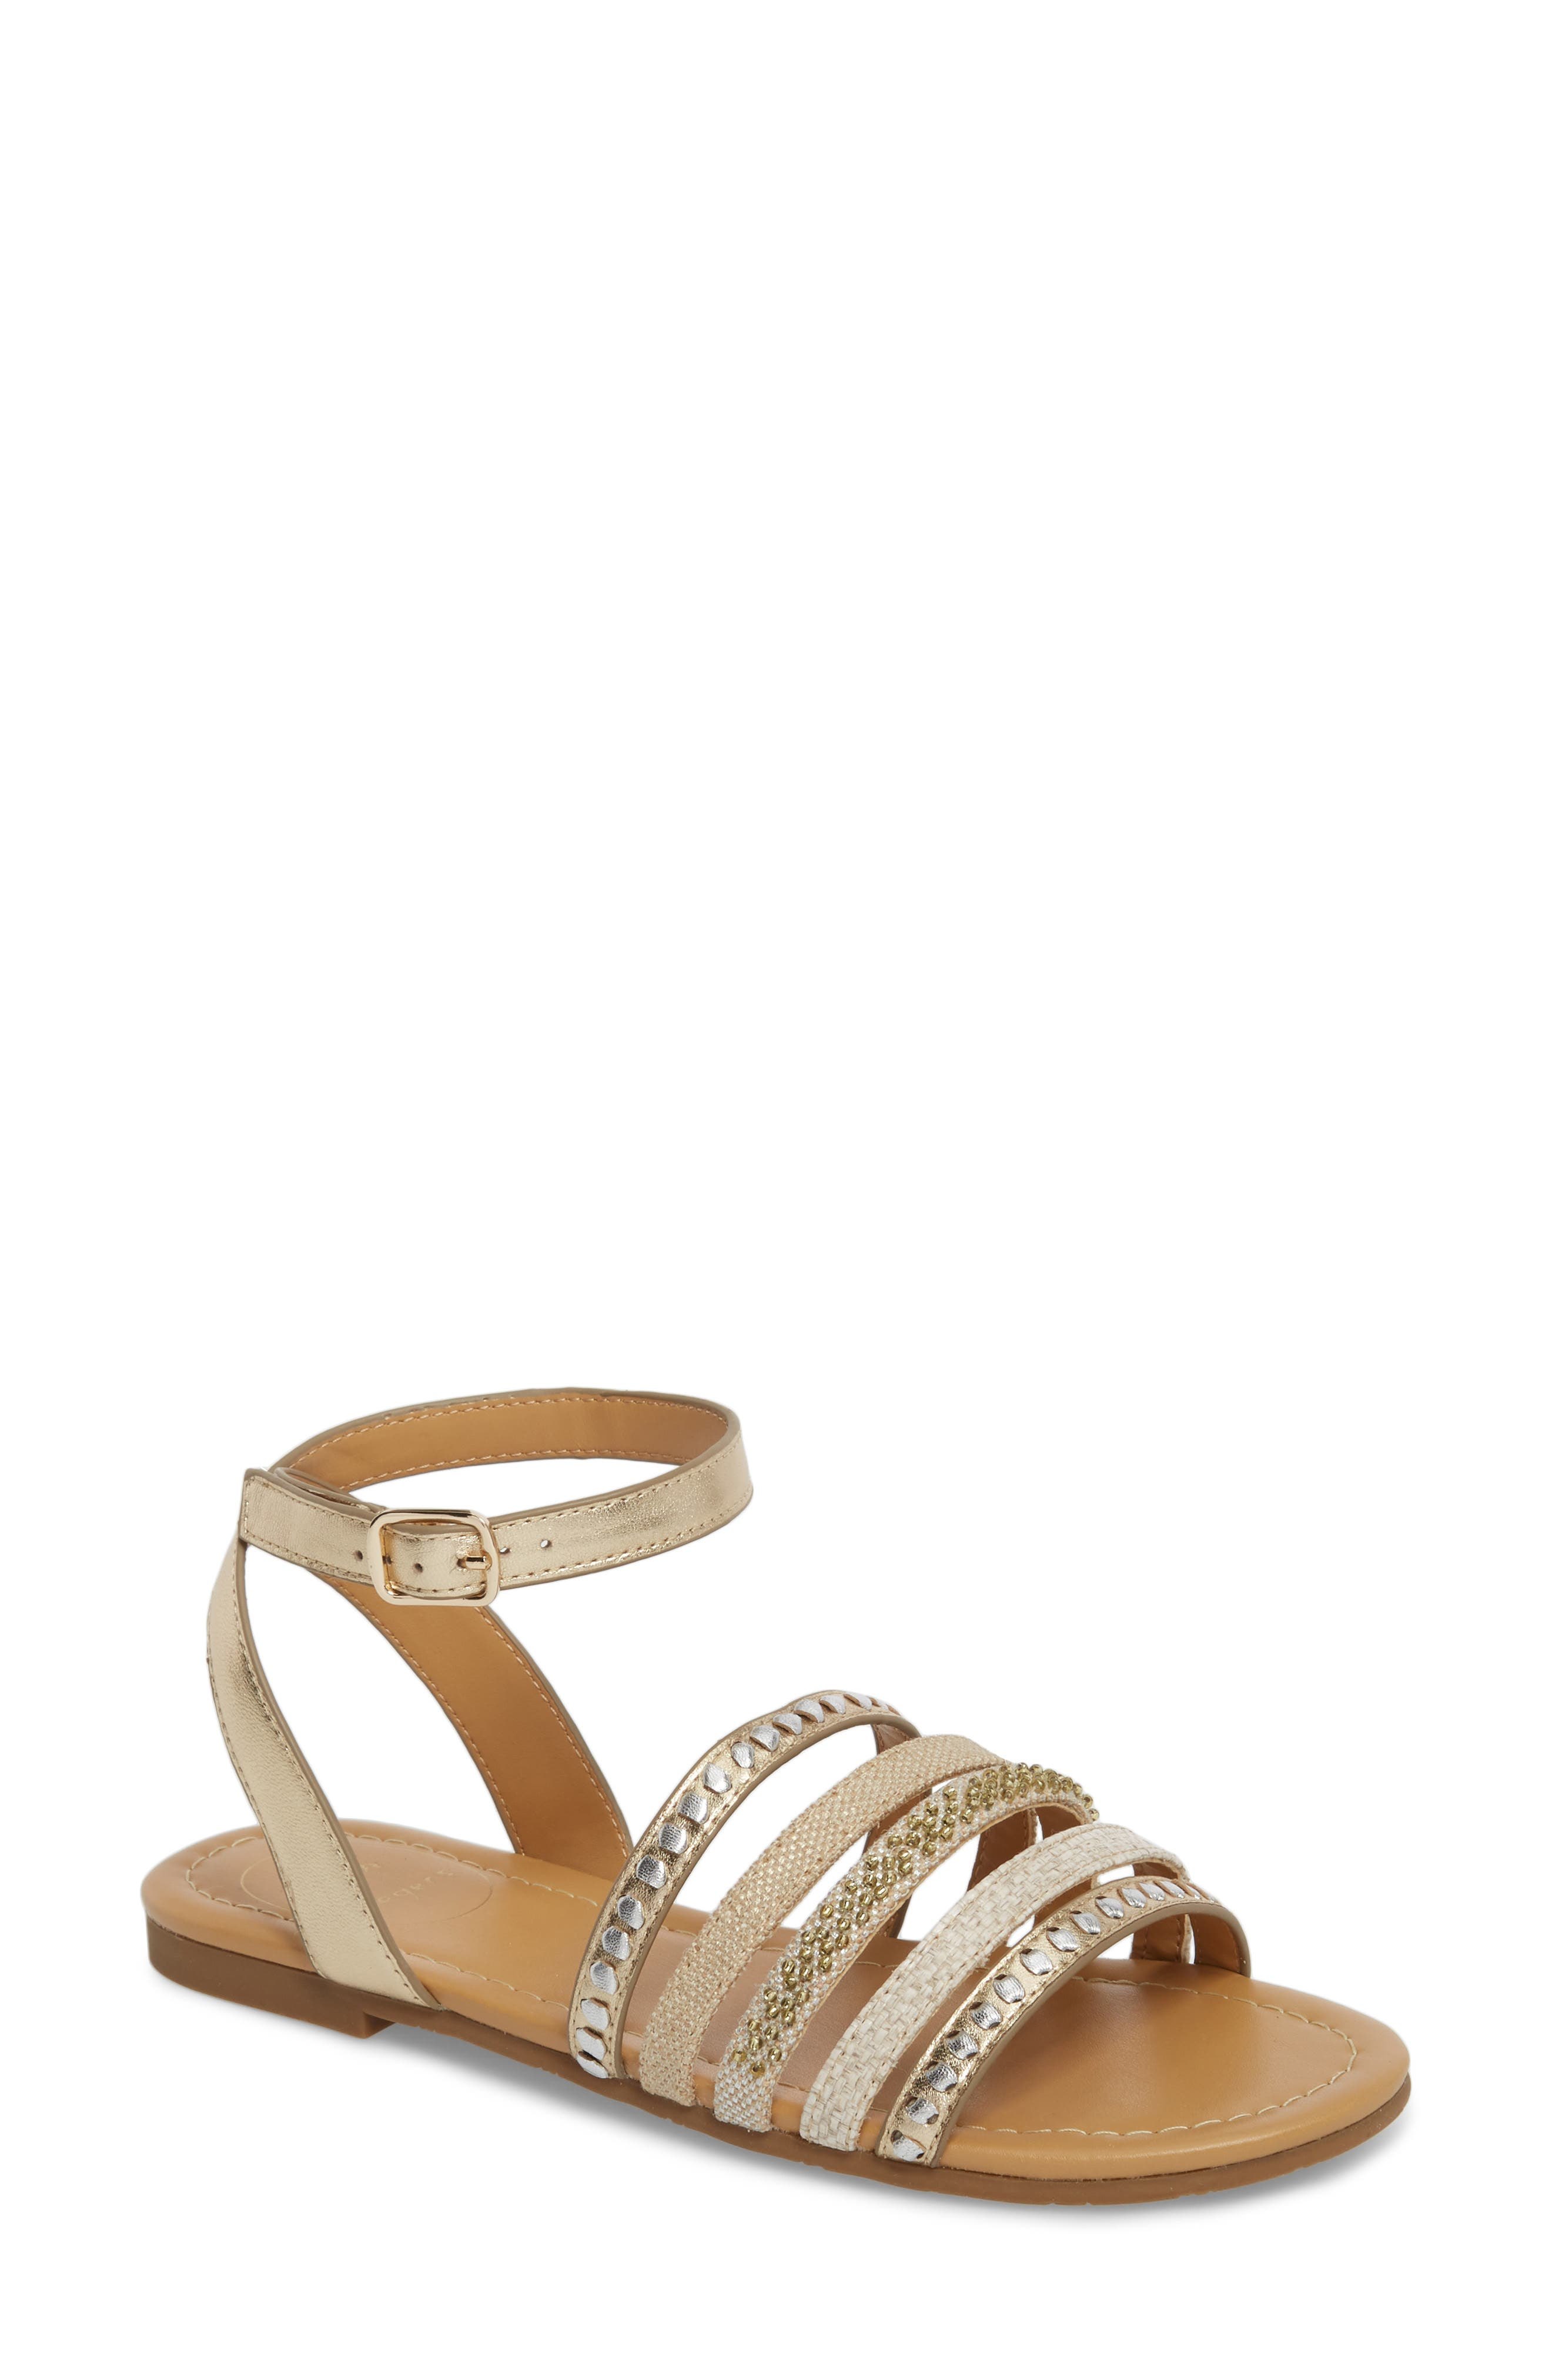 Hannah Braided Embellished Sandal,                             Main thumbnail 1, color,                             Platinum/ Silver Leather